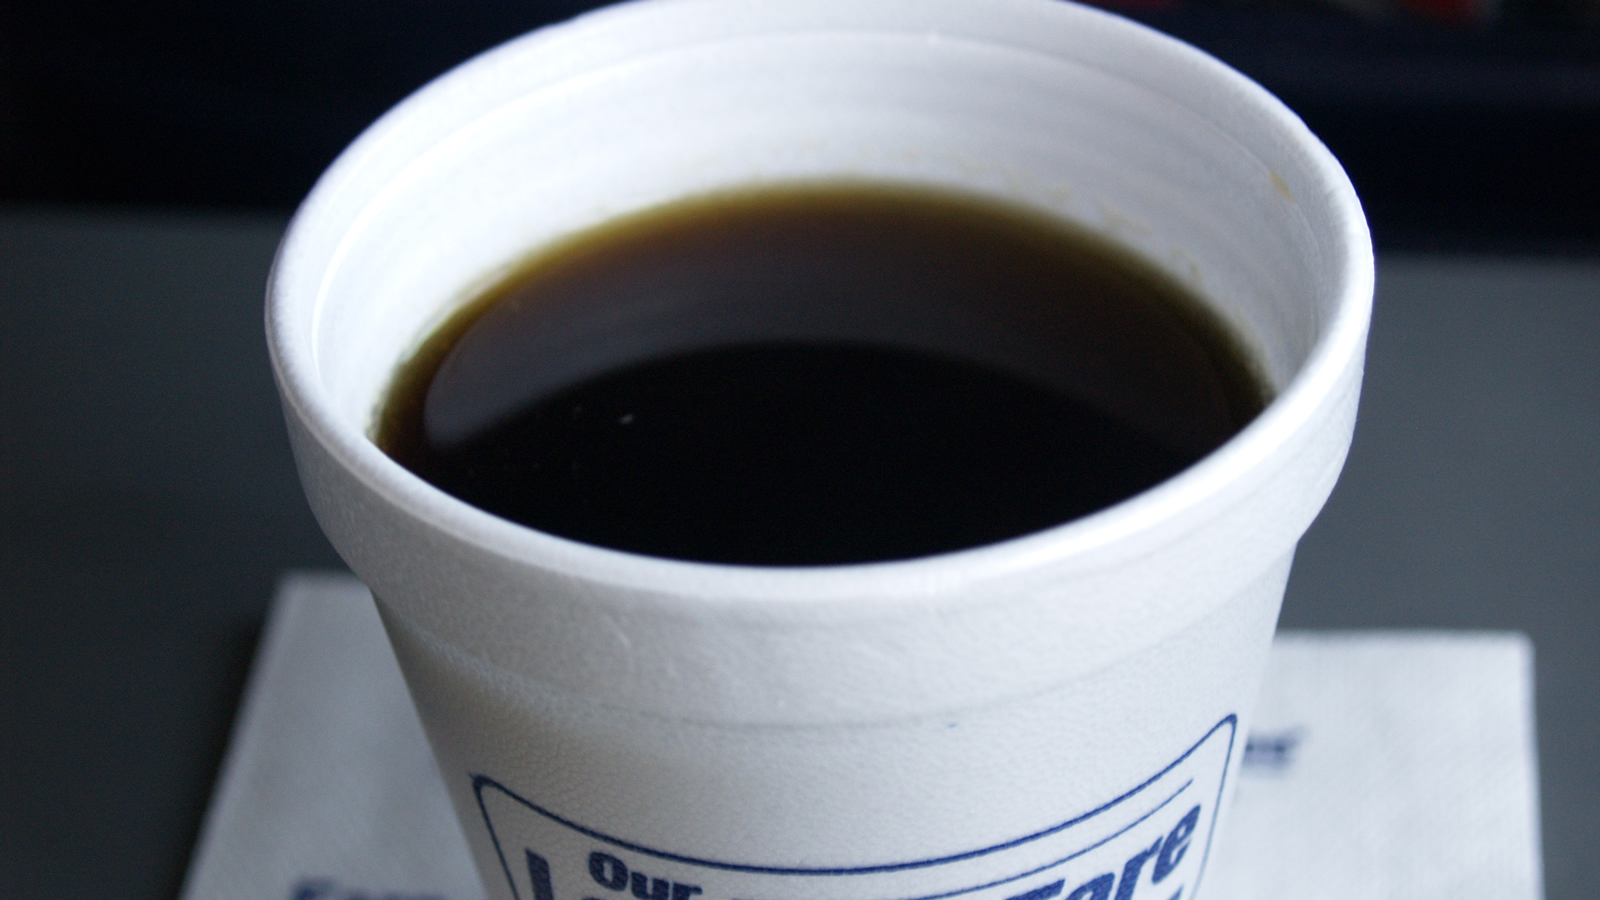 <h4>It's Made With Harmful Chemicals</h4><p>Polystyrene is made using synthetic chemicals. Chemicals that may leach out if they come in contact with hot, greasy or acidic food. Yes, they keep your coffee hot – but they may also add an unwanted dose of toxins to your drink.</p><em>cyclonebill, CC-BY-SA-2.0</em>